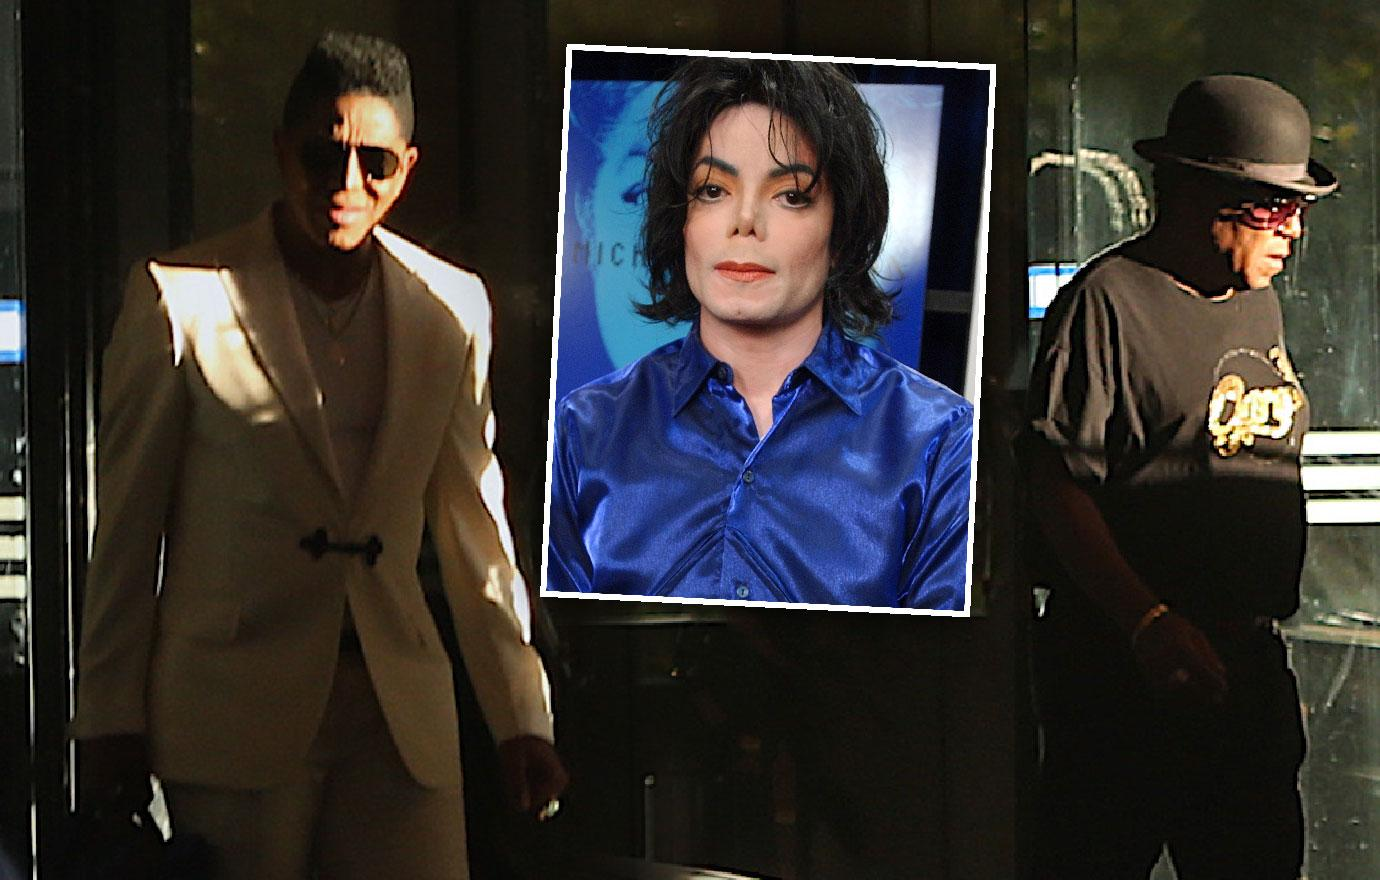 Jacksons Perform After Wade Robson Michael Molestation Claims